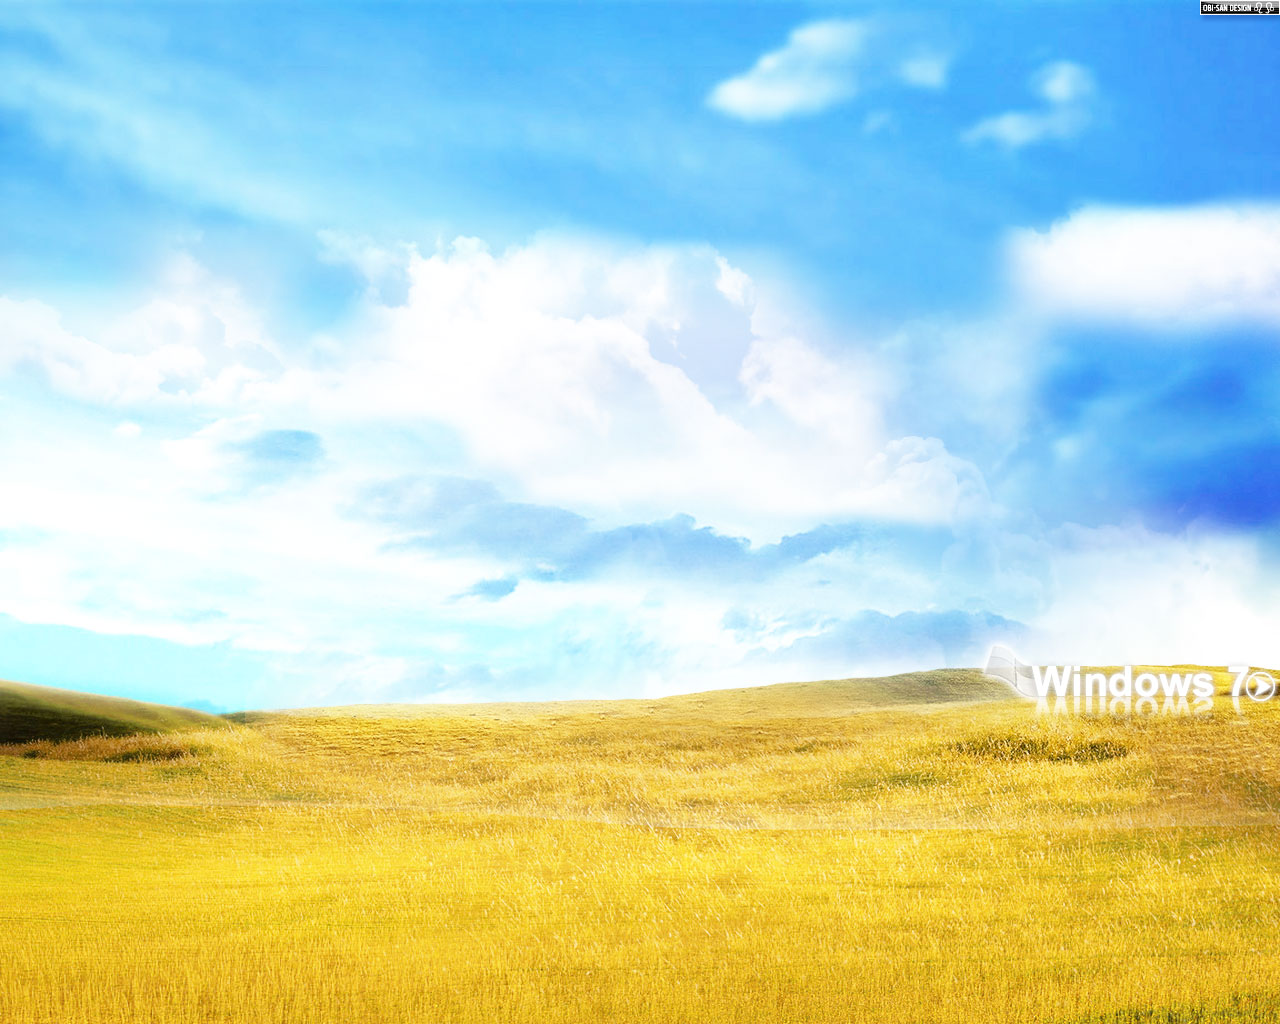 Windows 7 rolling fields